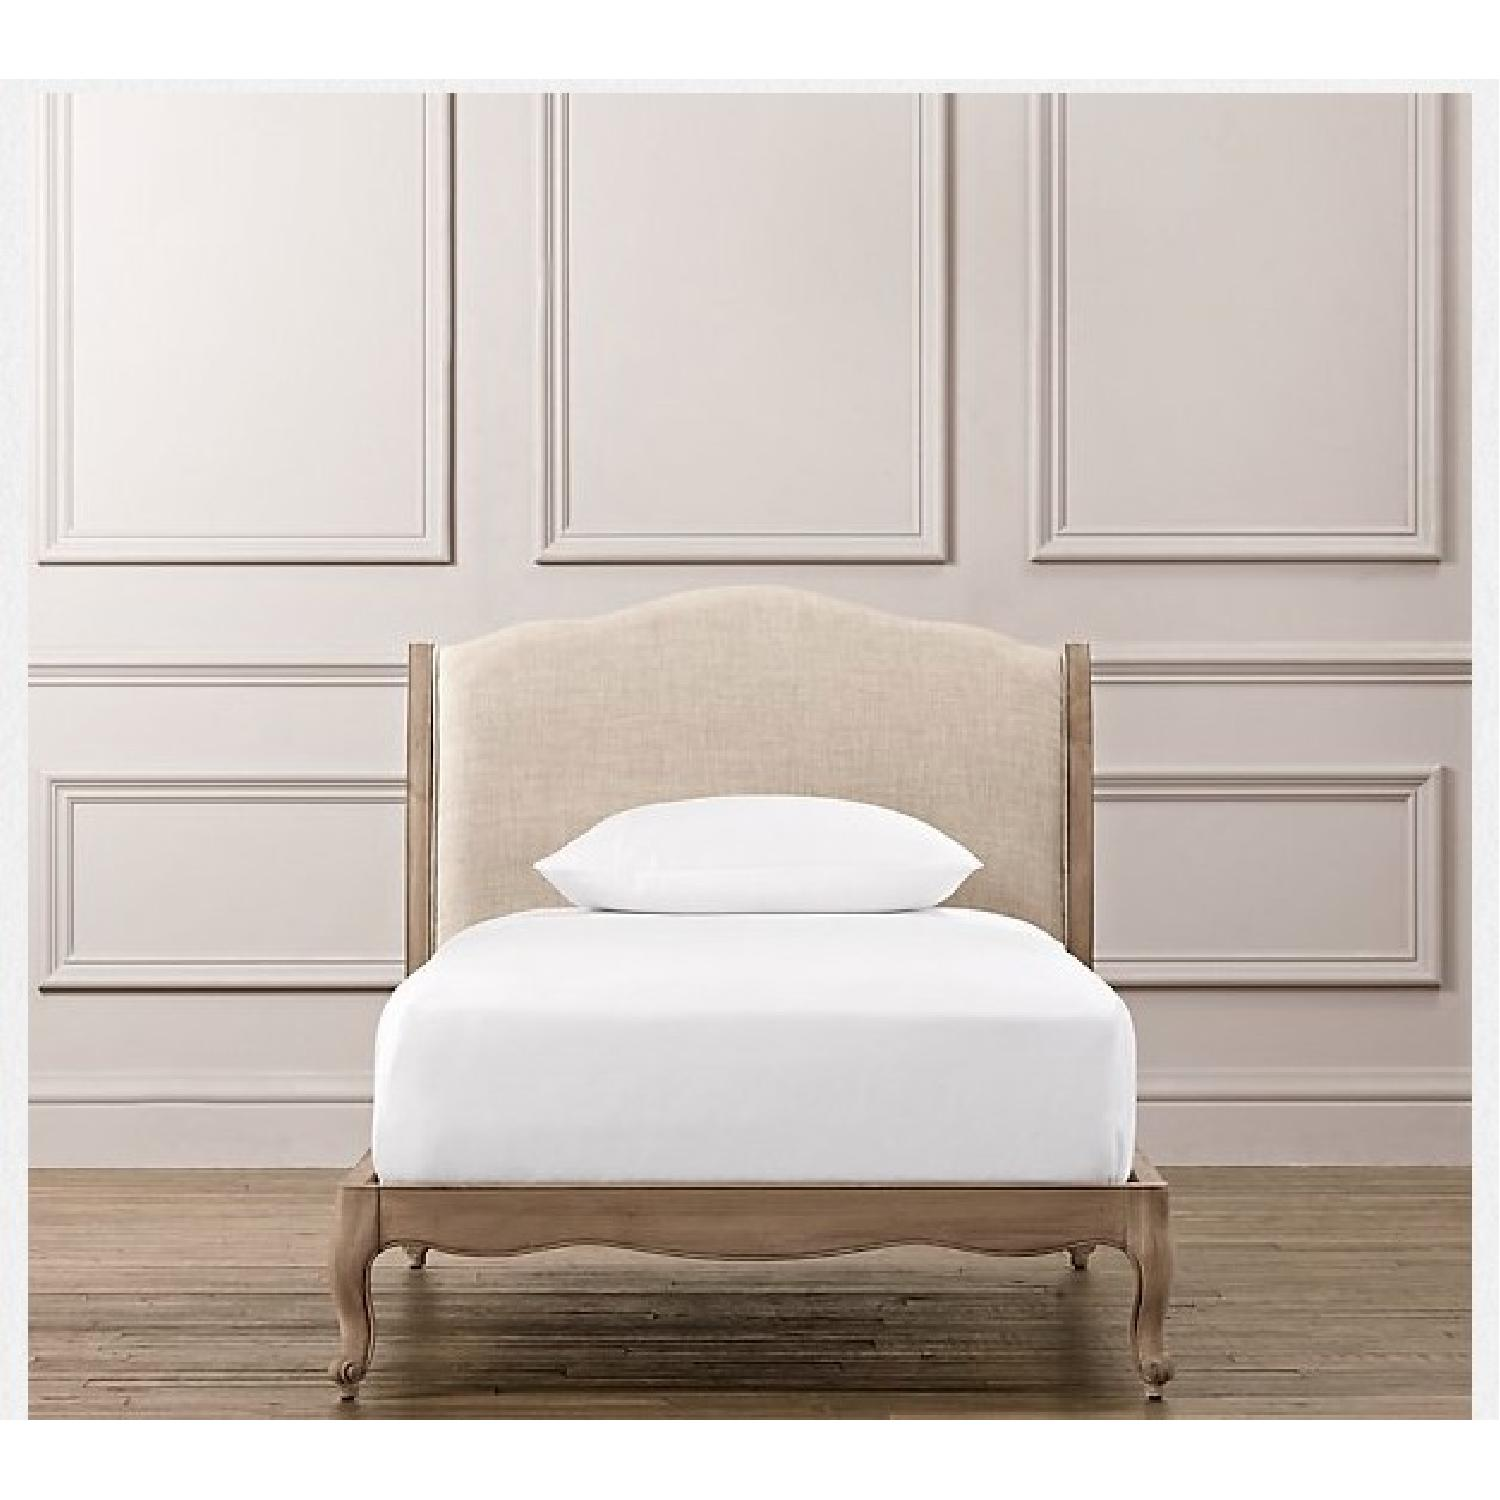 Restoration Hardware Lea Upholstered Twin Size Platform Beds - Pair - image-3